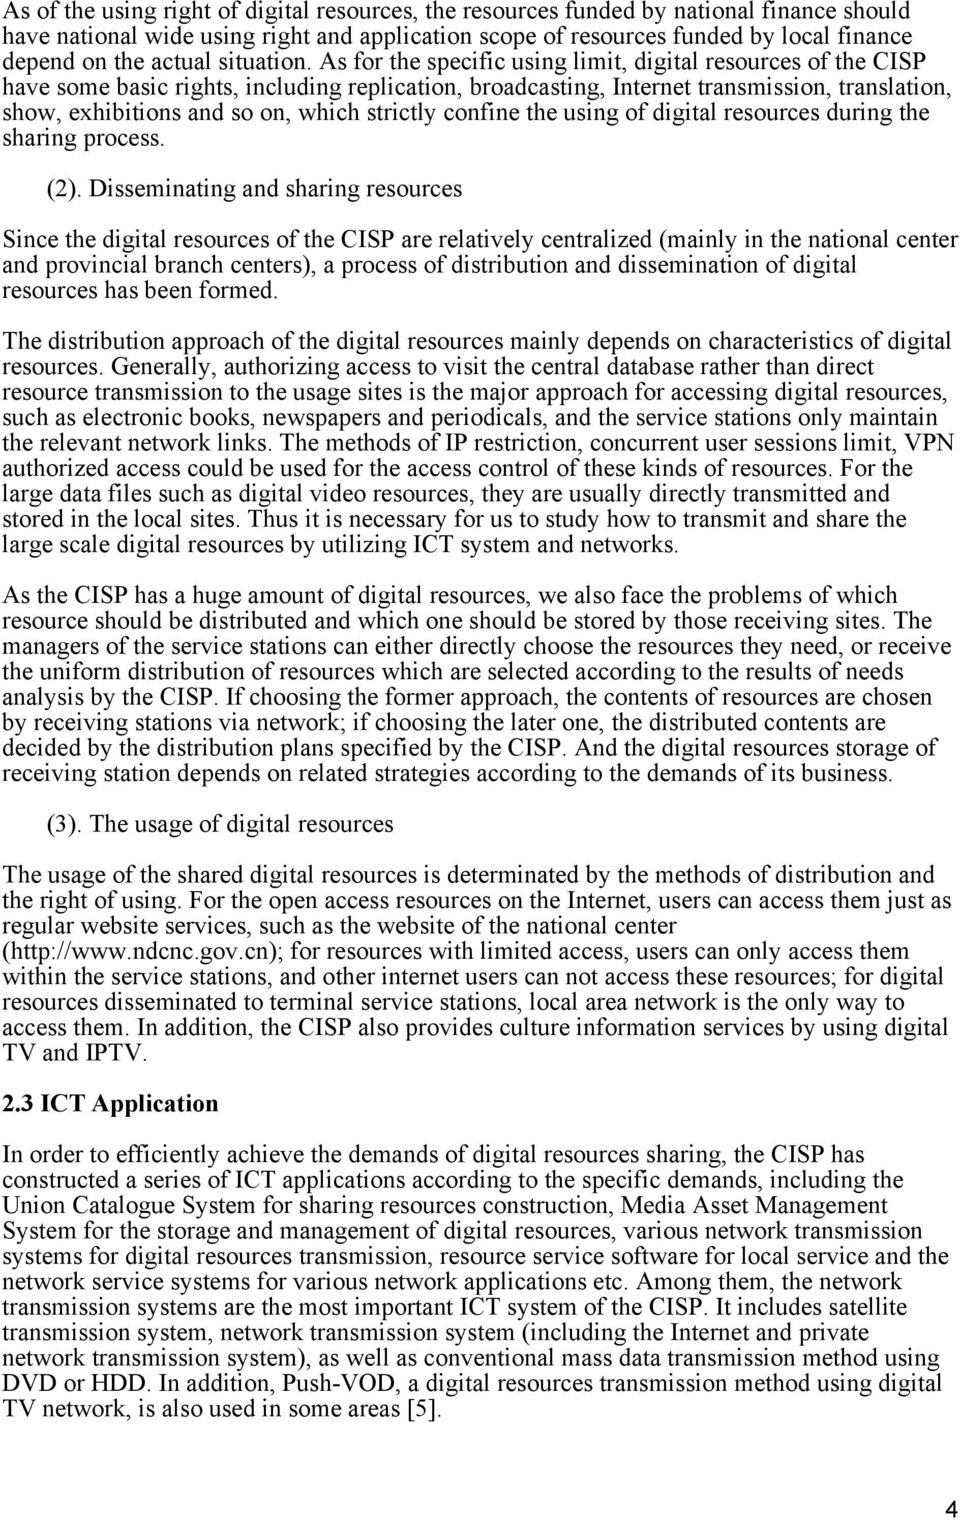 As for the specific using limit, digital resources of the CISP have some basic rights, including replication, broadcasting, Internet transmission, translation, show, exhibitions and so on, which